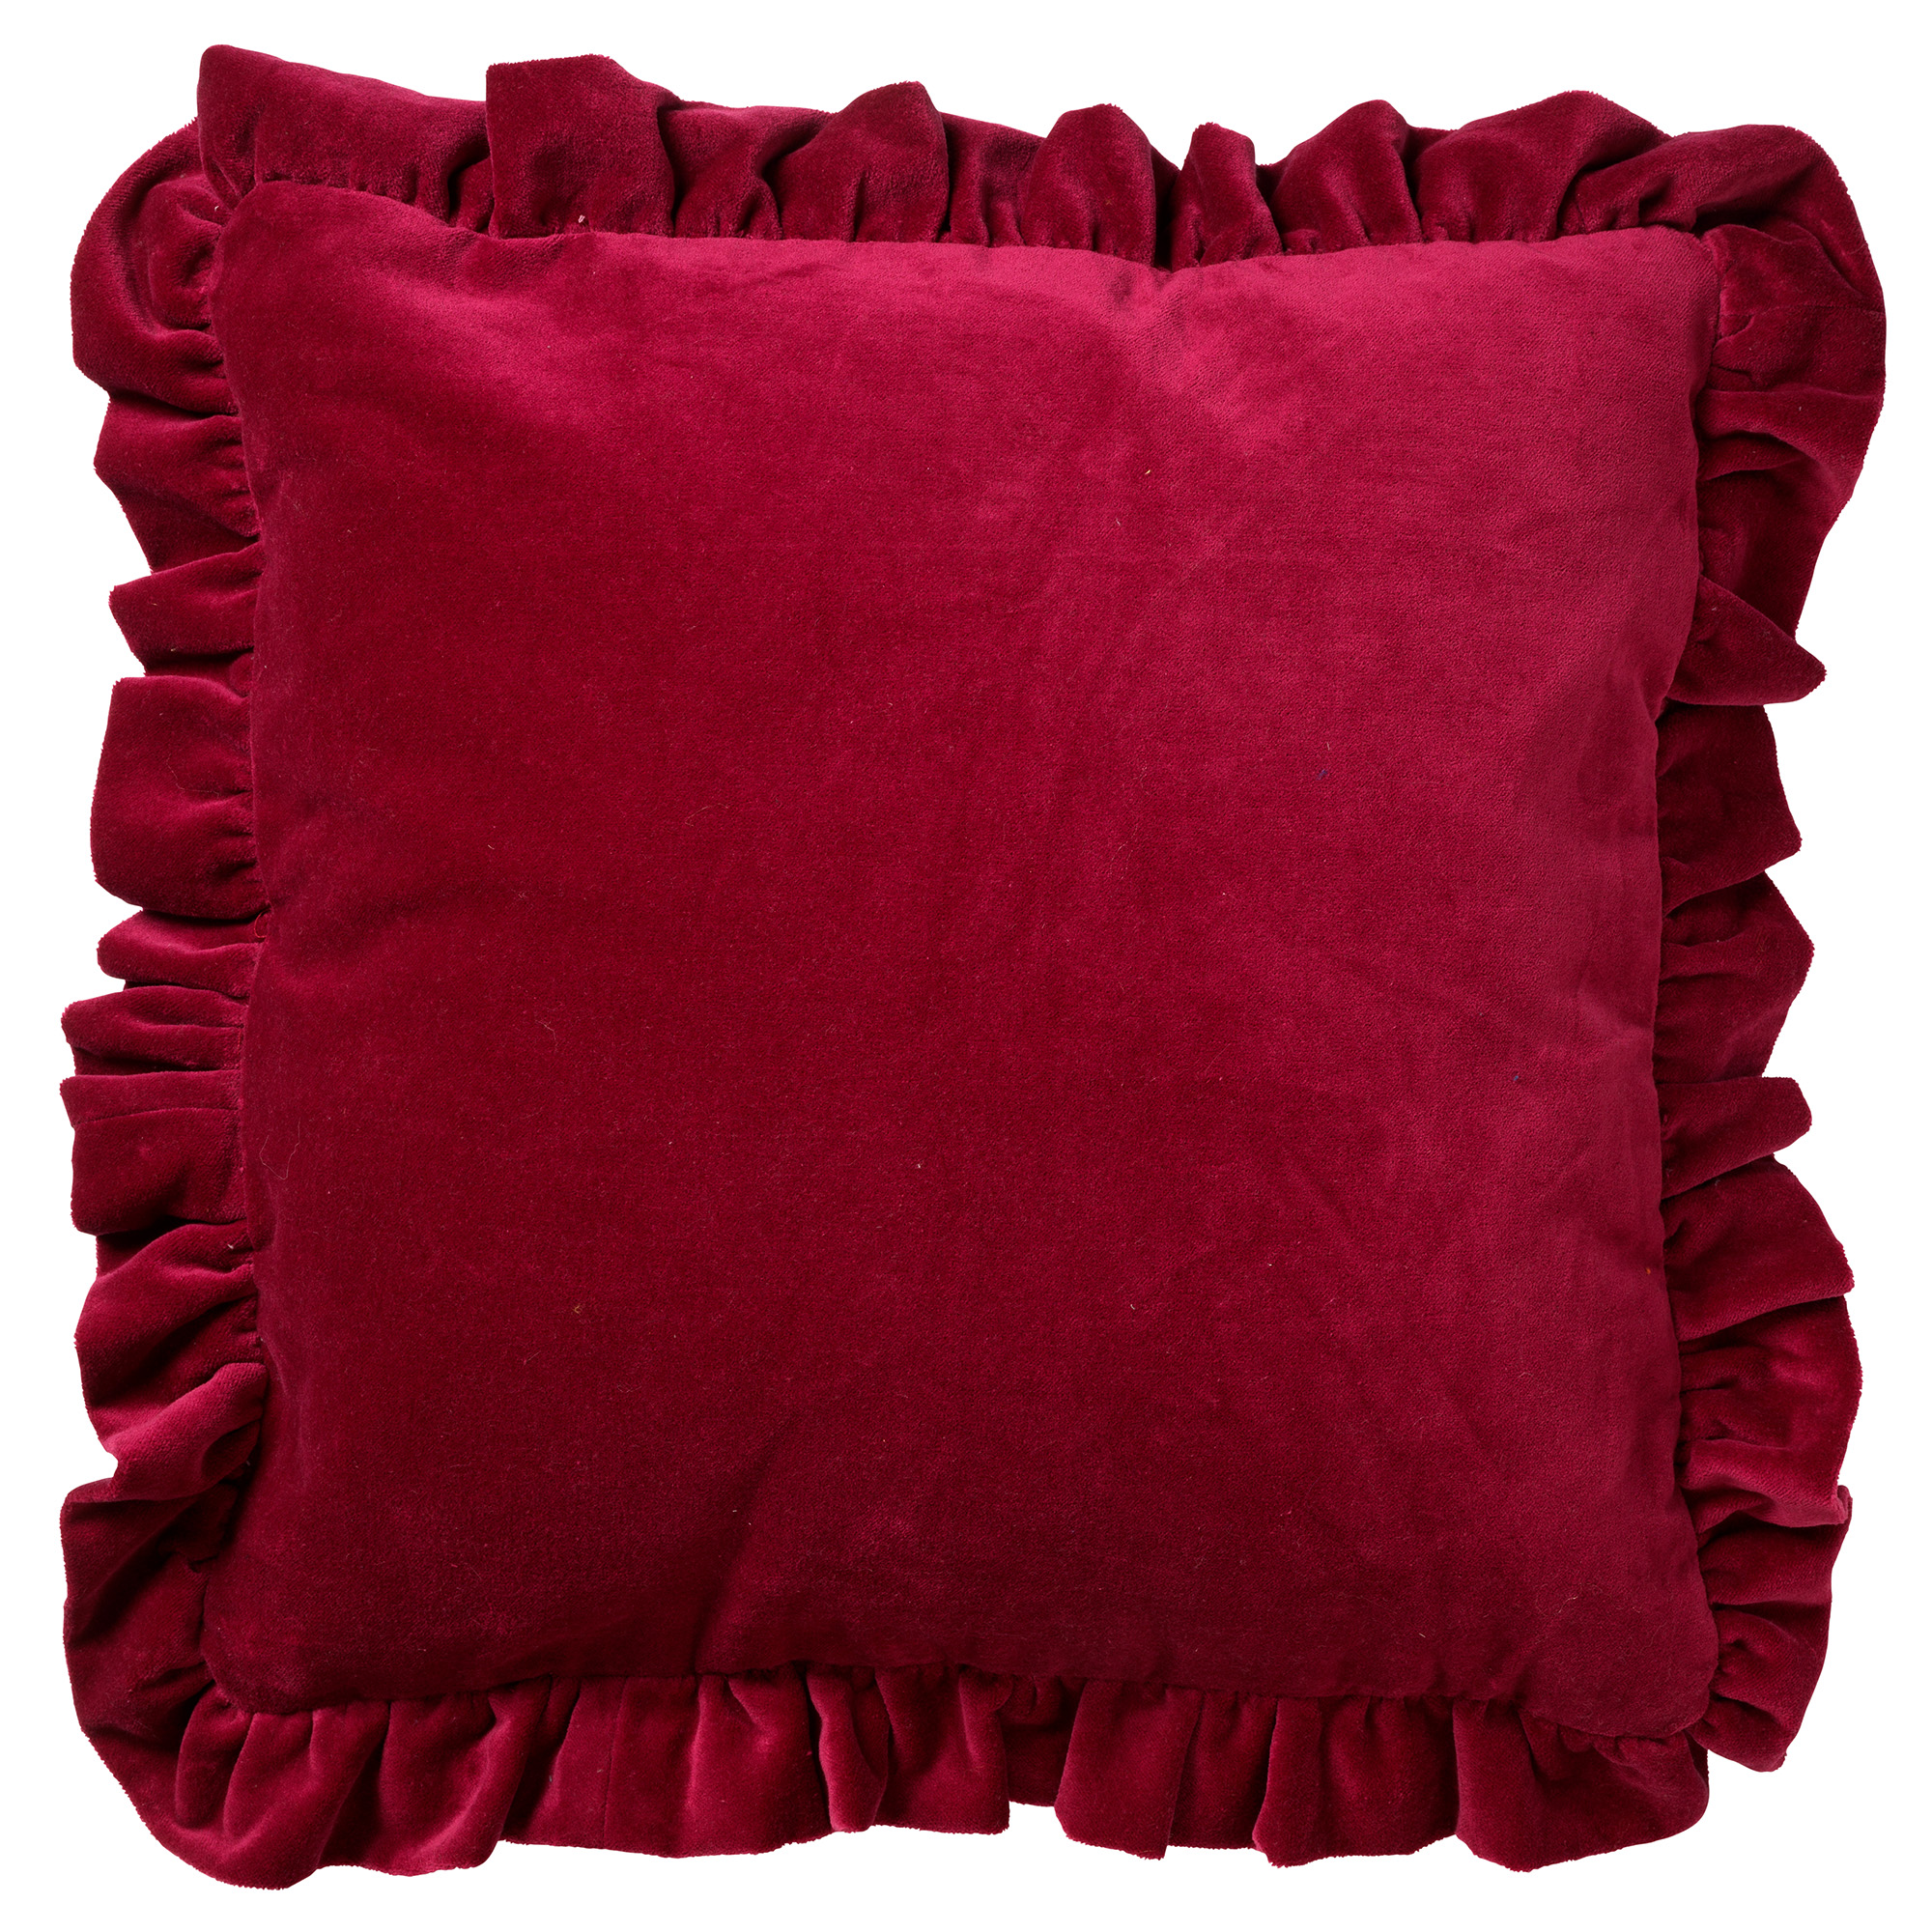 YARA - Kussenhoes velvet Red Plum 45x45 cm